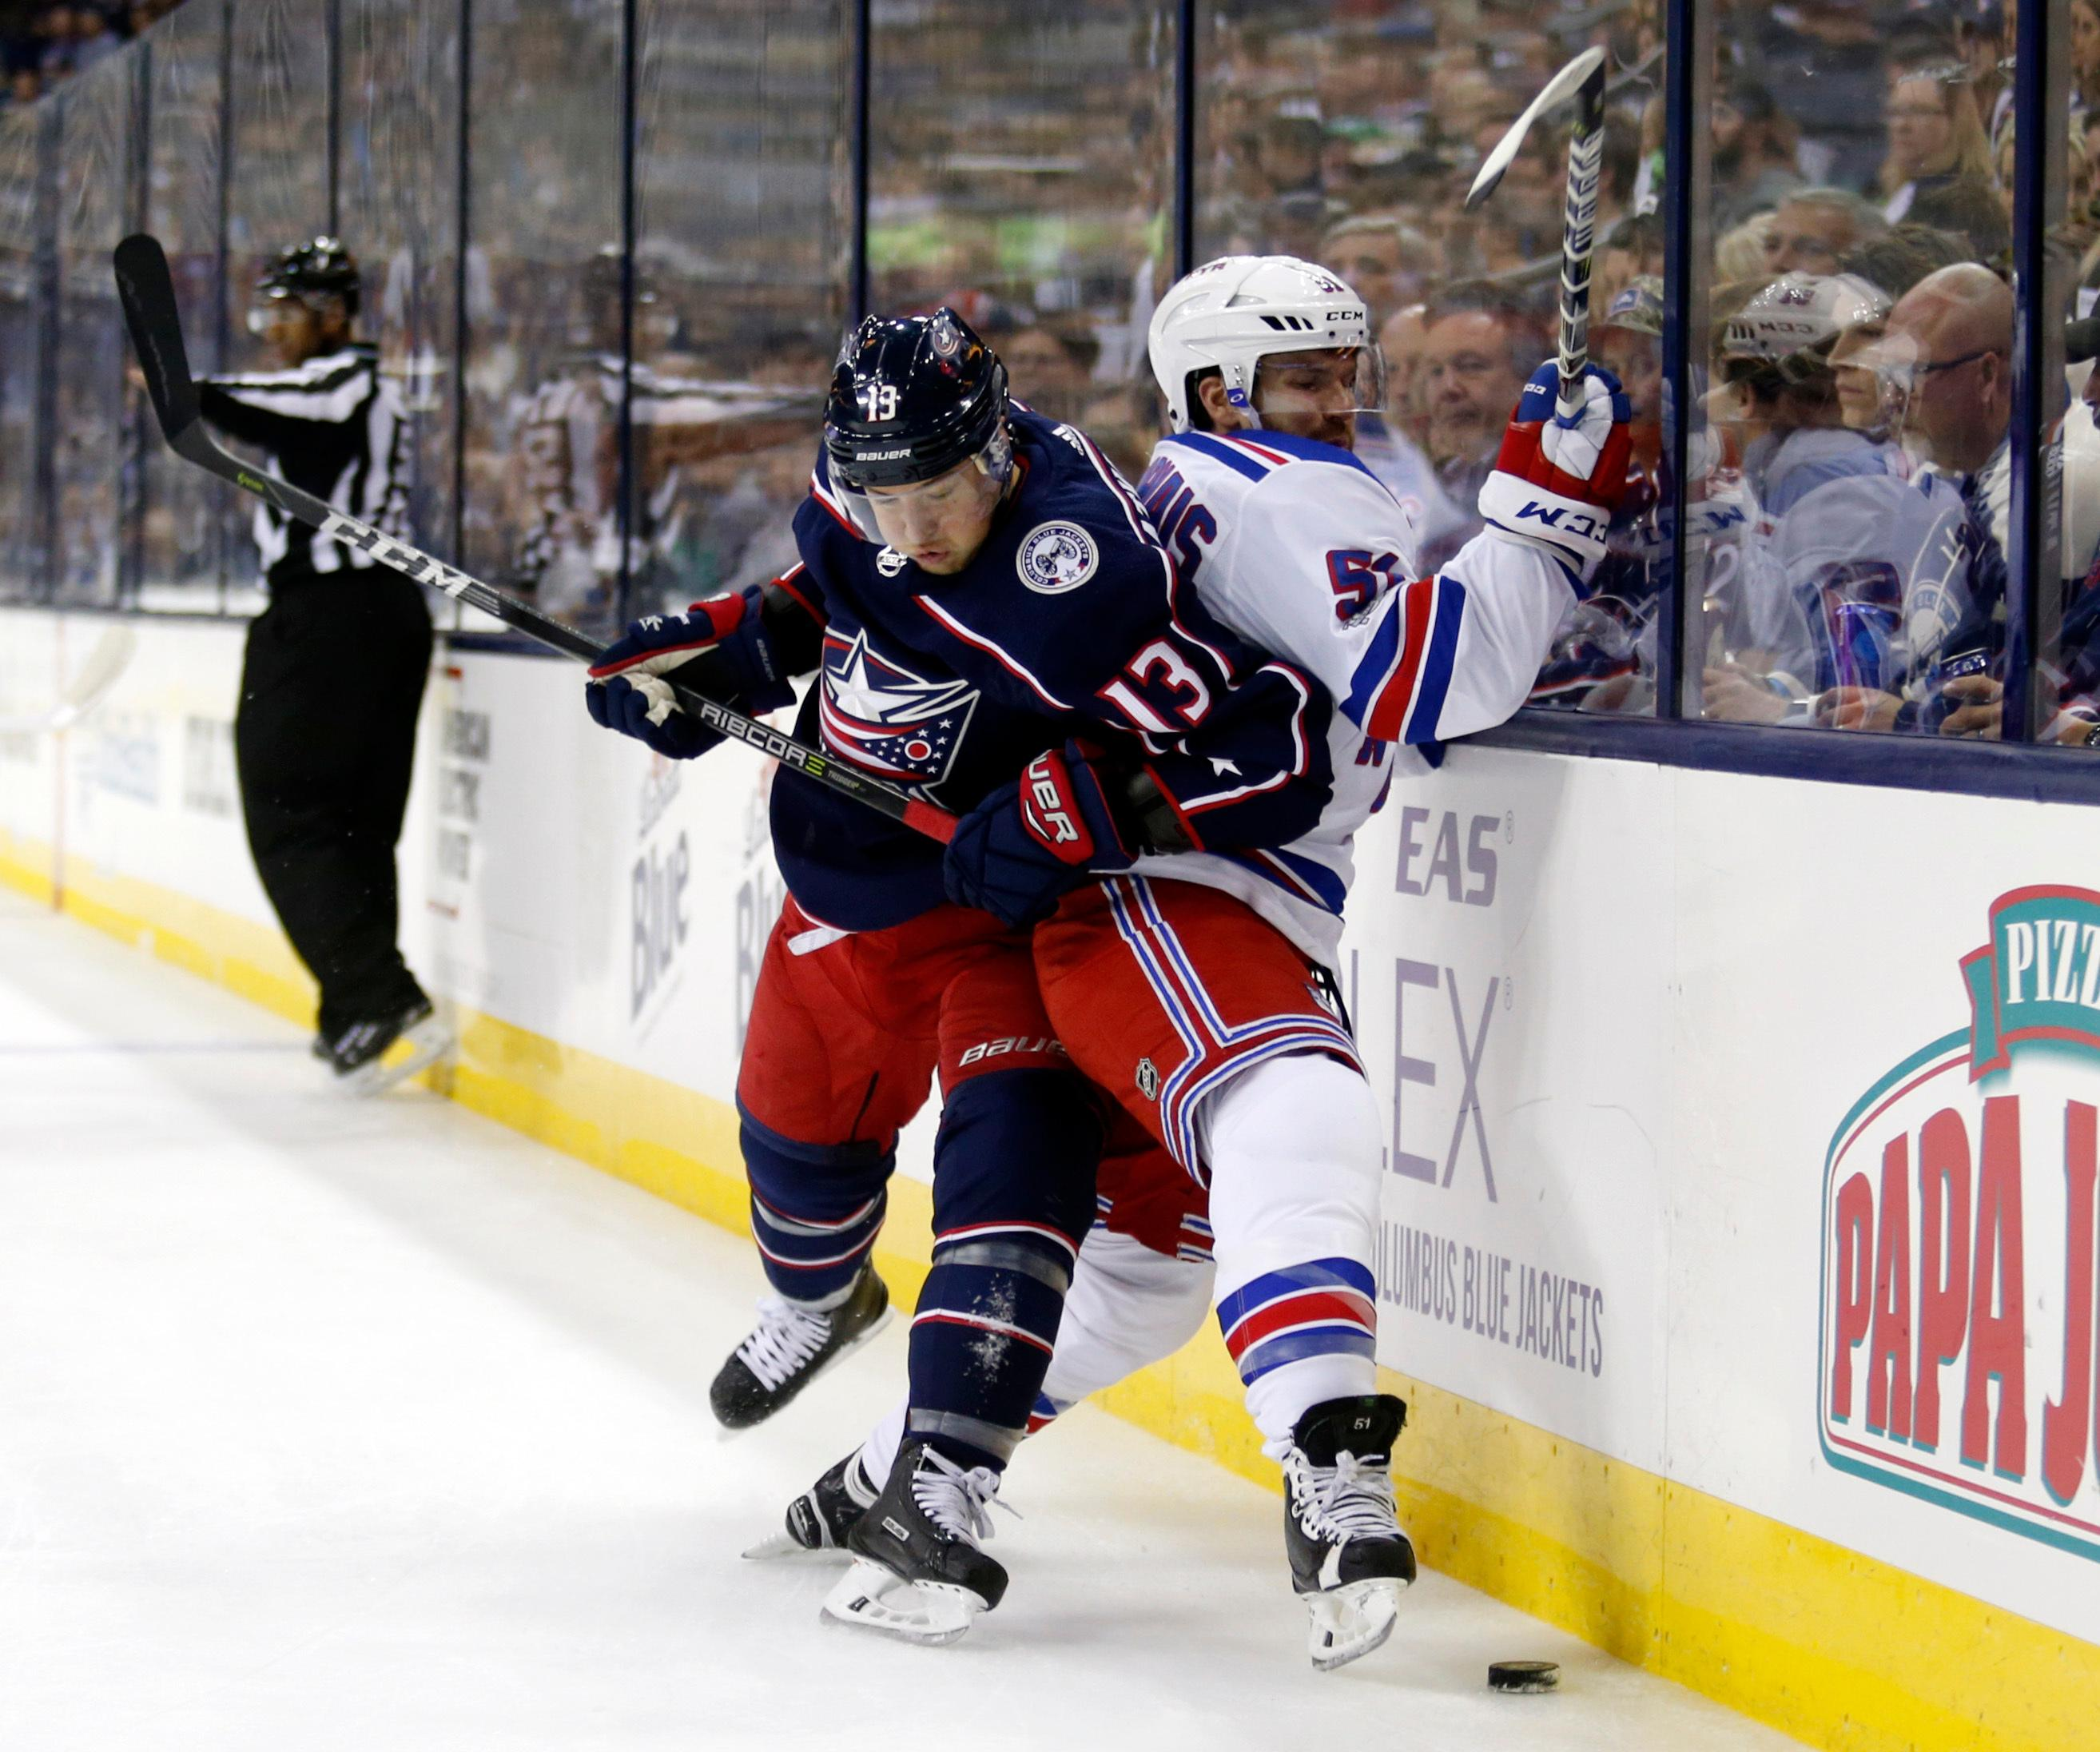 Columbus Blue Jackets forward Cam Atkinson, left, checks New York Rangers forward David Desharnais during the first period of an NHL hockey game in Columbus, Ohio, Friday, Oct. 13, 2017. (AP Photo/Paul Vernon)